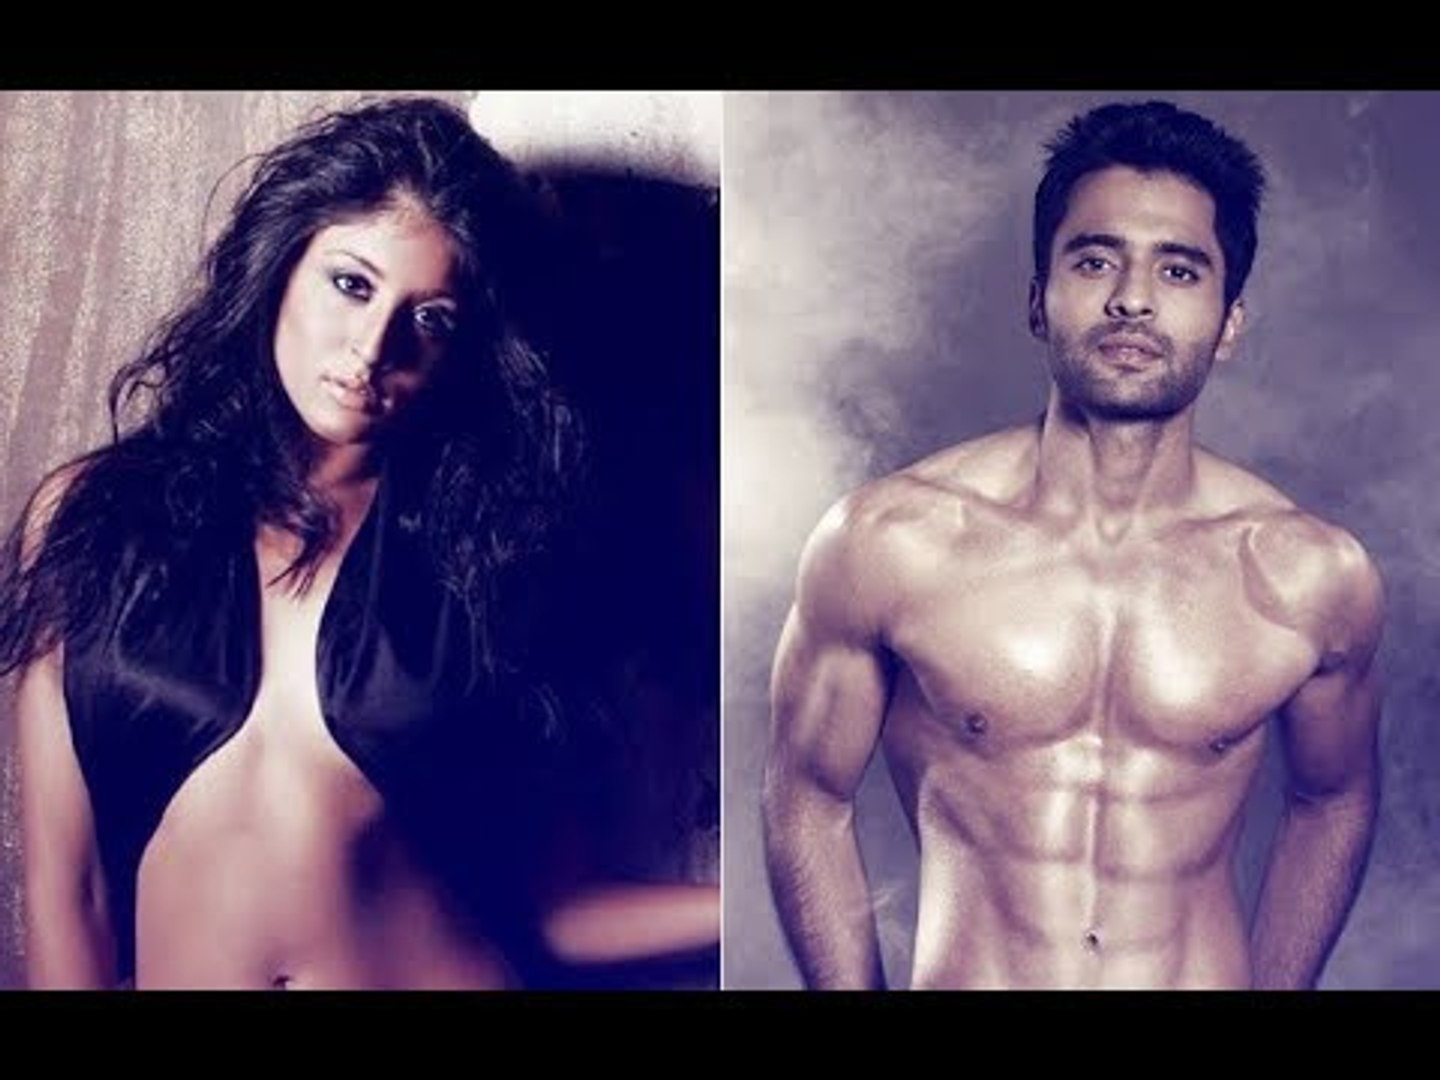 Kritika Kamra Gets a Birthday Surprise from Co-Star Jacky Bhagnani | SpotboyE